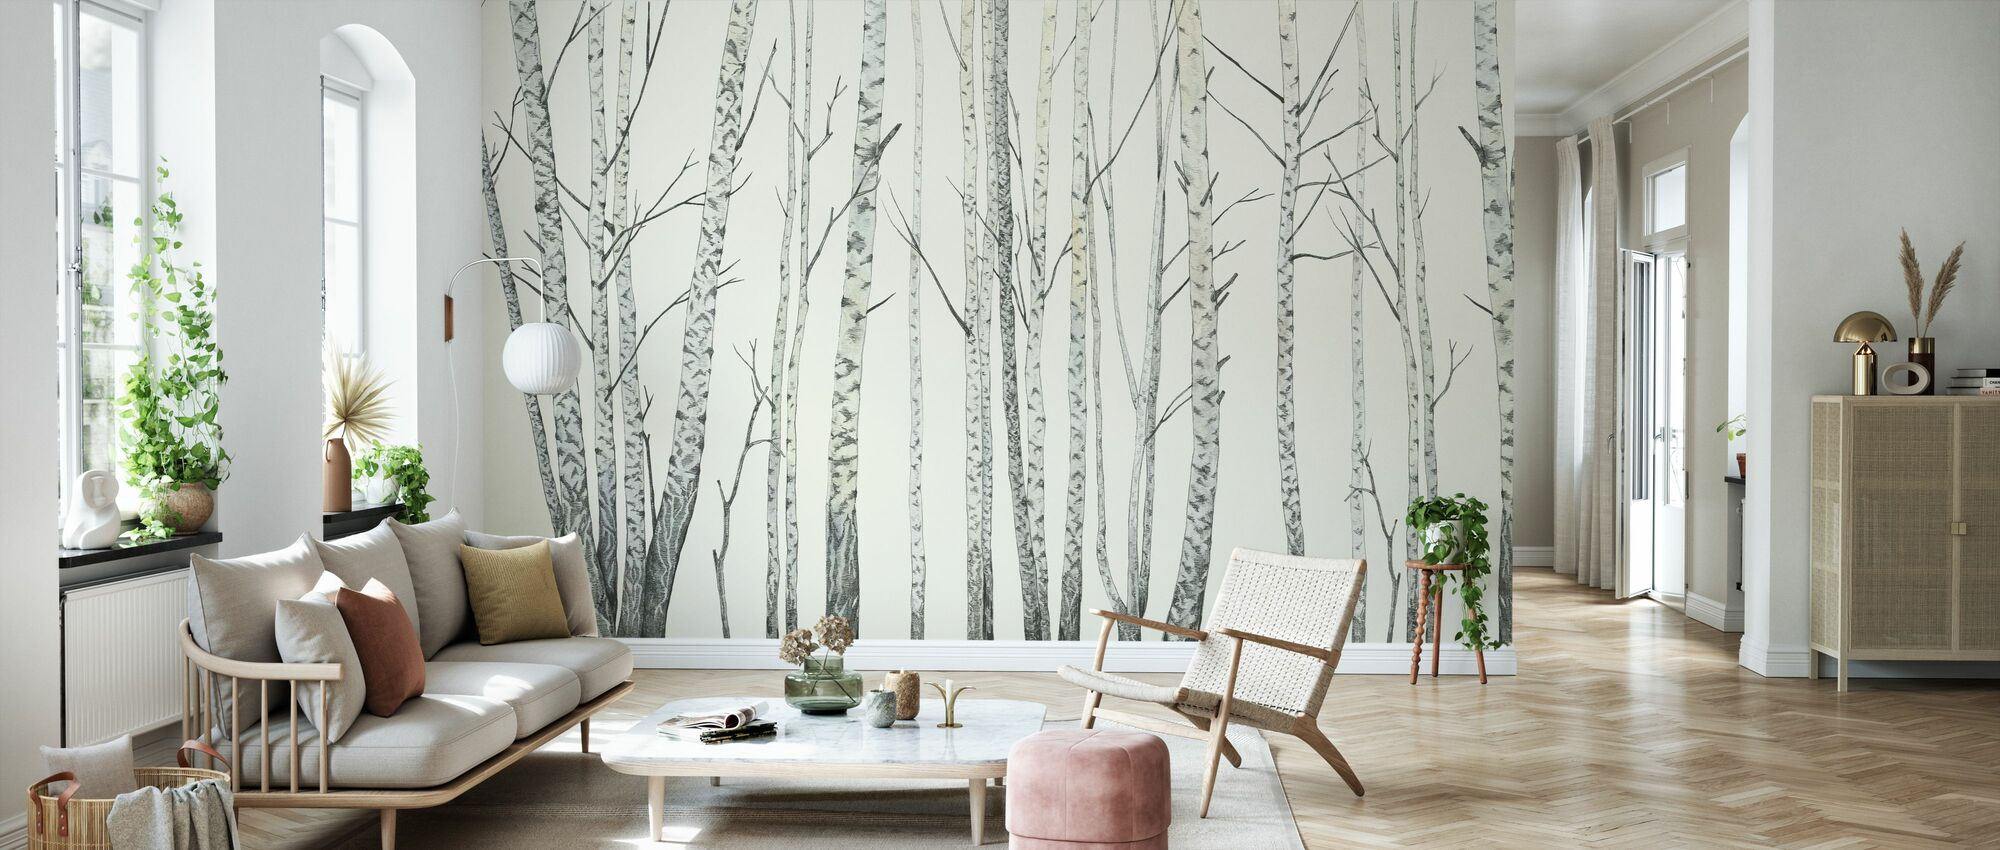 Birch Stems - Cream - Wallpaper - Living Room